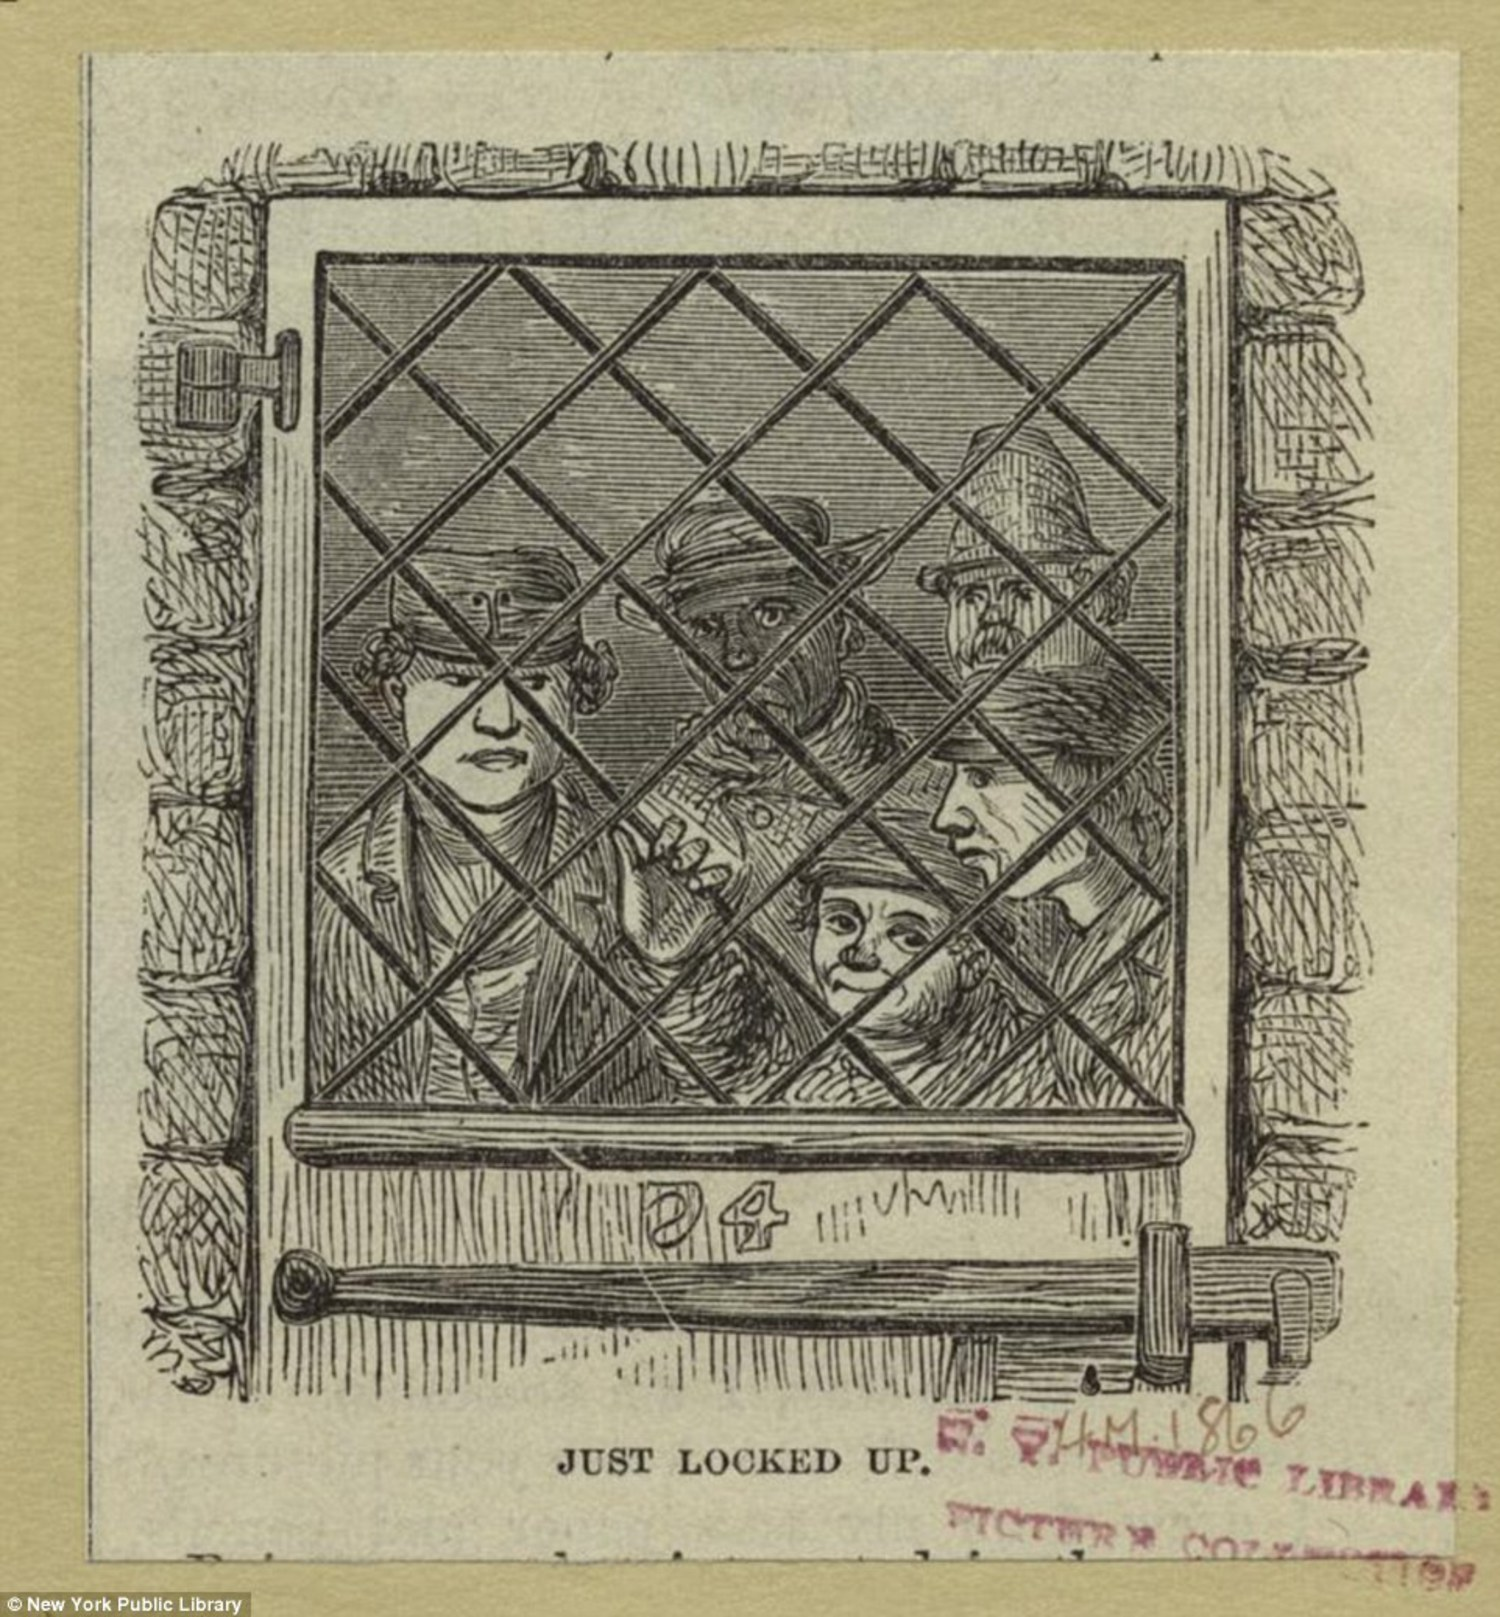 Some faces behind bars at Blackwell's Island Penitentiary. Gangs were given wide controls of the prison, due to corrupt workers